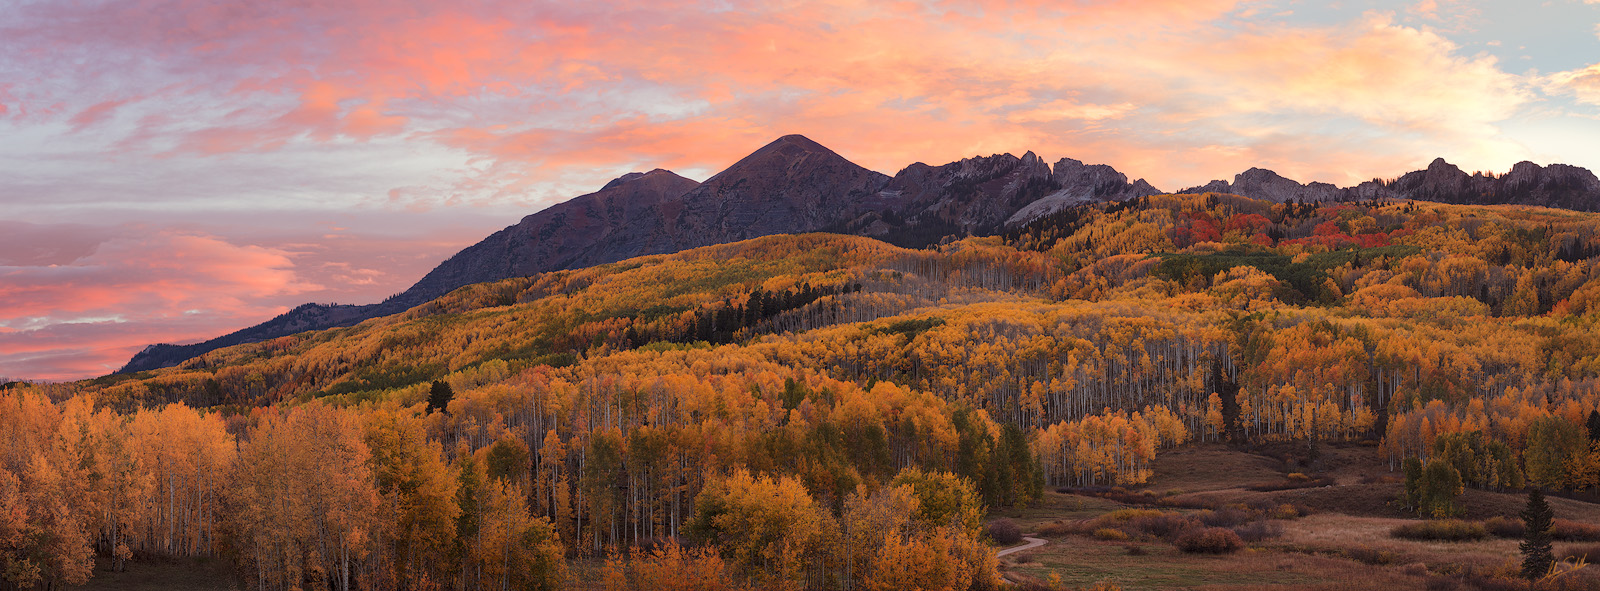 Autumn, CO, Colorado, Colorado Fall Color, Crested Butte, Crested Butte Fall Color, Dyke, Fall, Fall Color, Horse Park, Horse Ranch Park, Kebler Pass, Pano, Panorama, Panoramic, Ruby, Ruby Peak, Sunri, photo